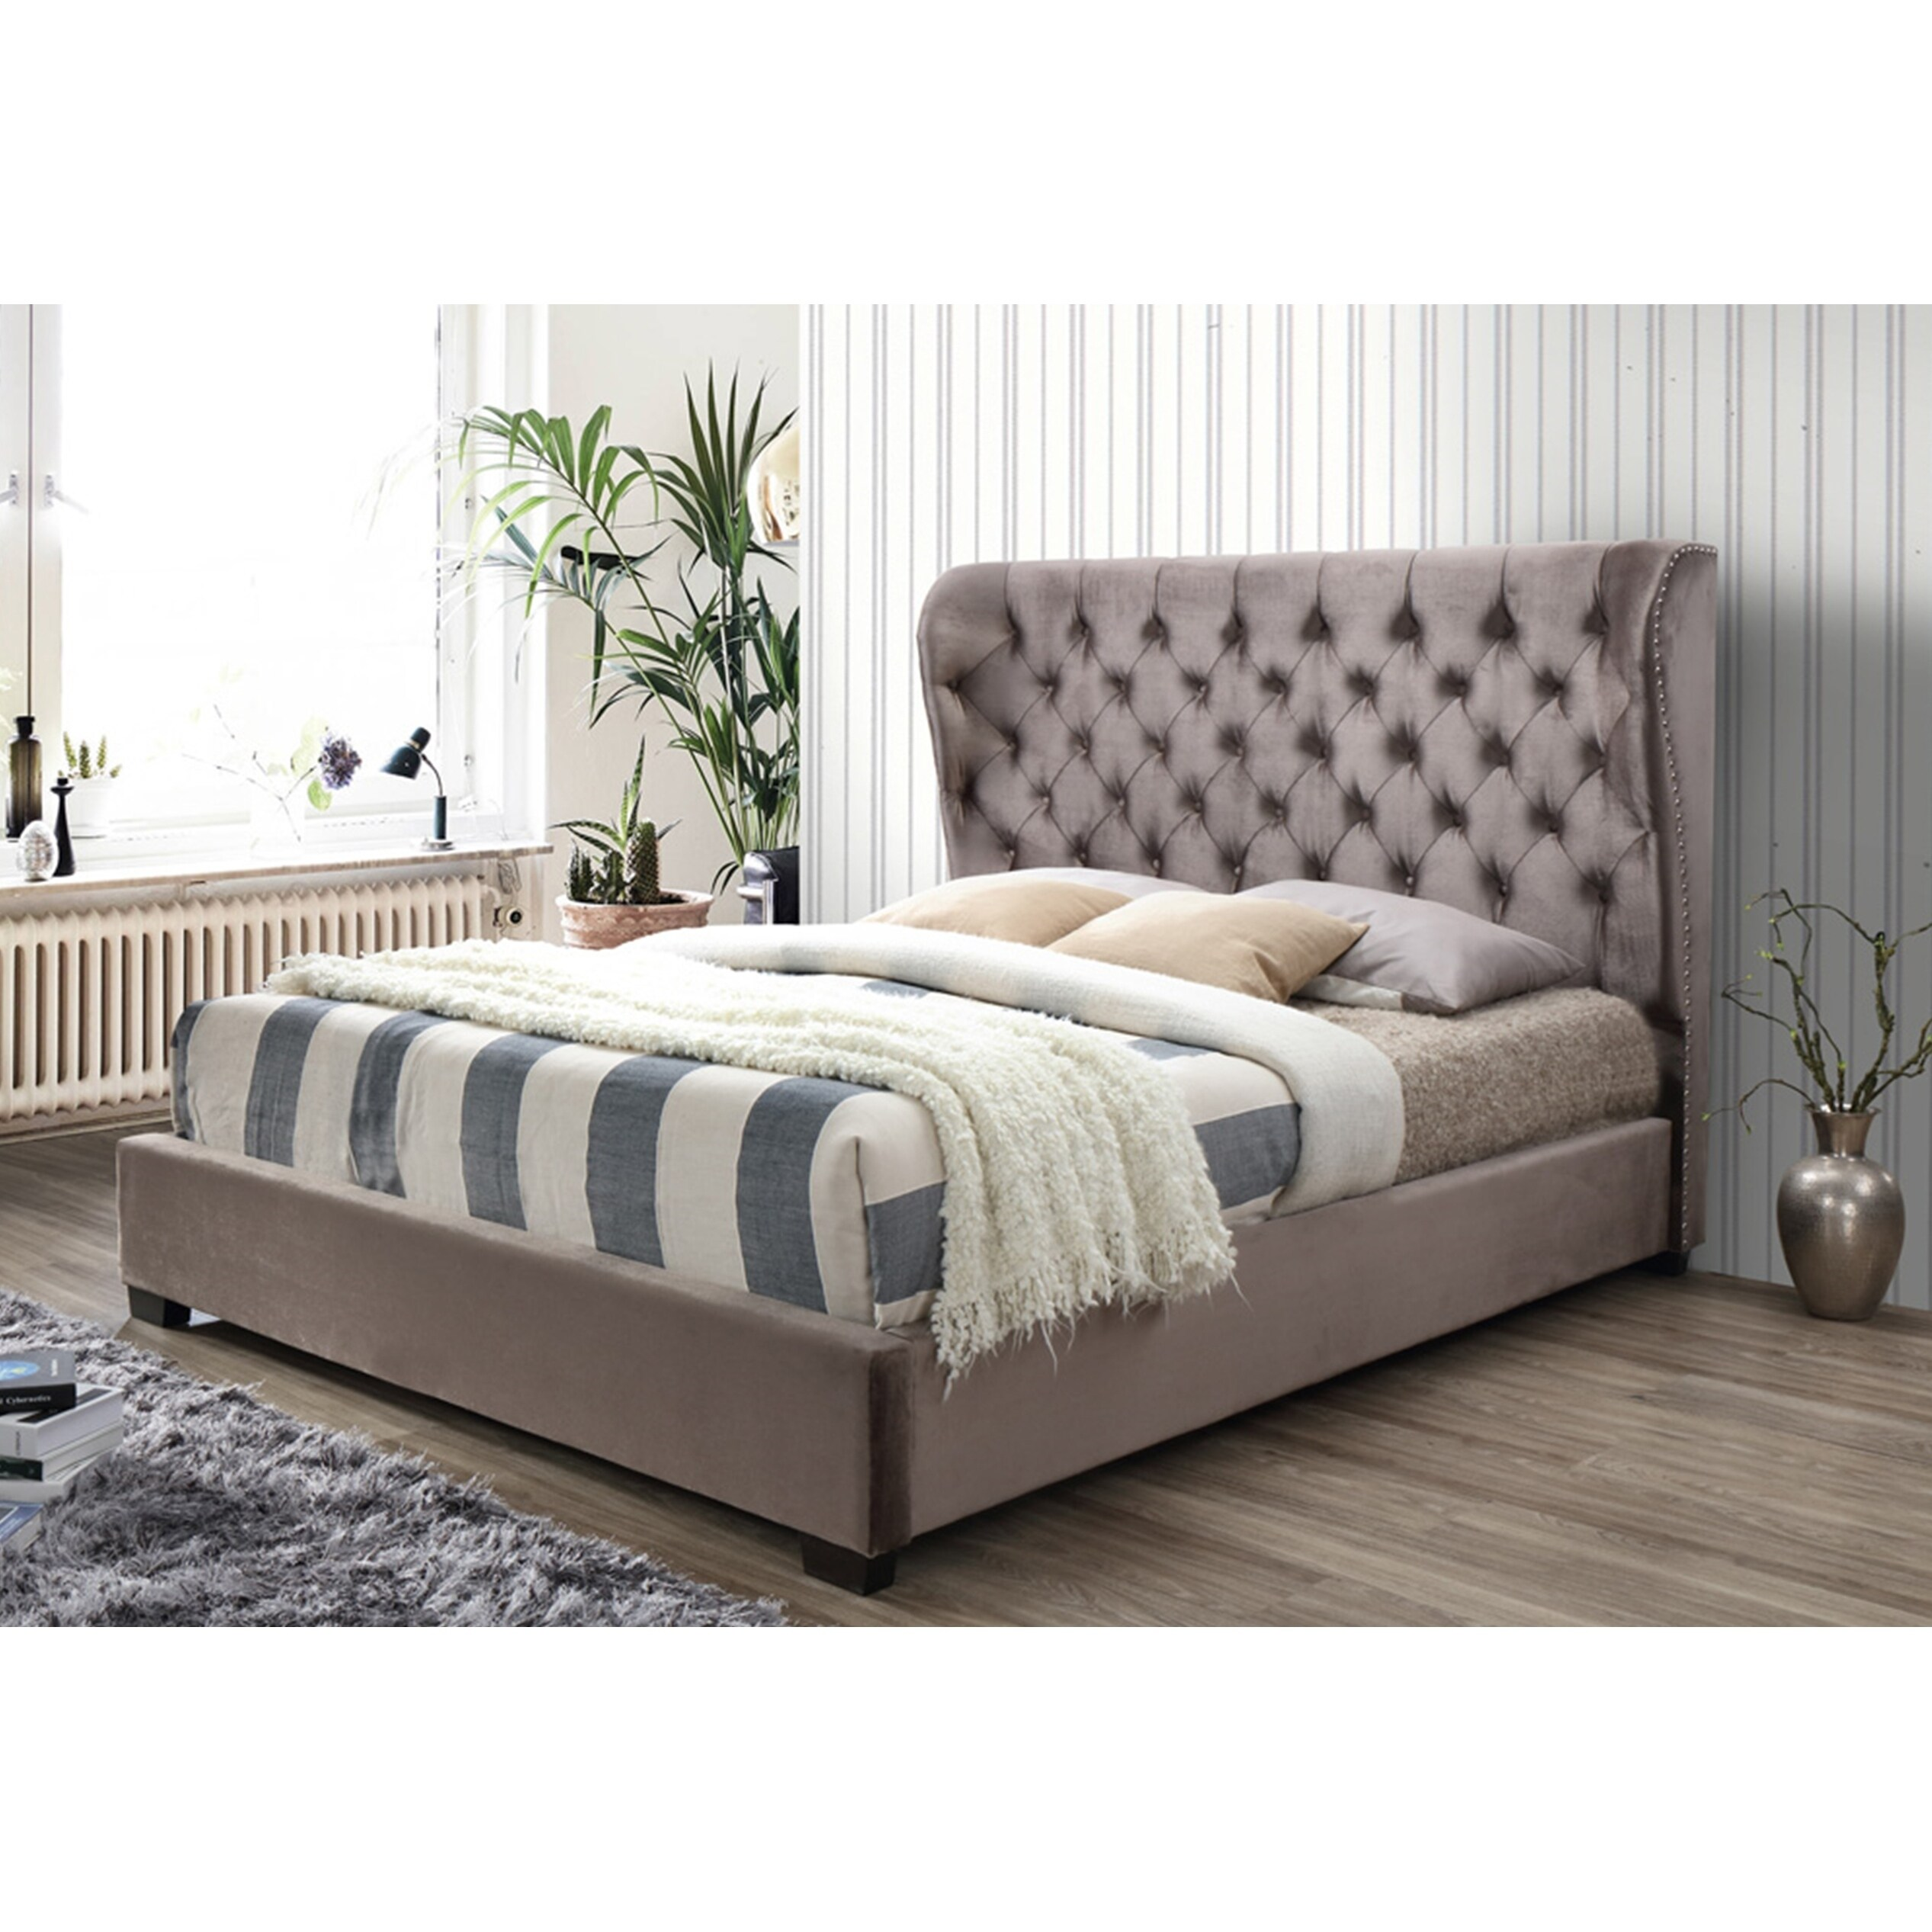 Light Brown Tufted Classic Velvet Wingback Queen Platform Bed With A 65 In Tall Headboard No Box Spring Required Overstock 25613705